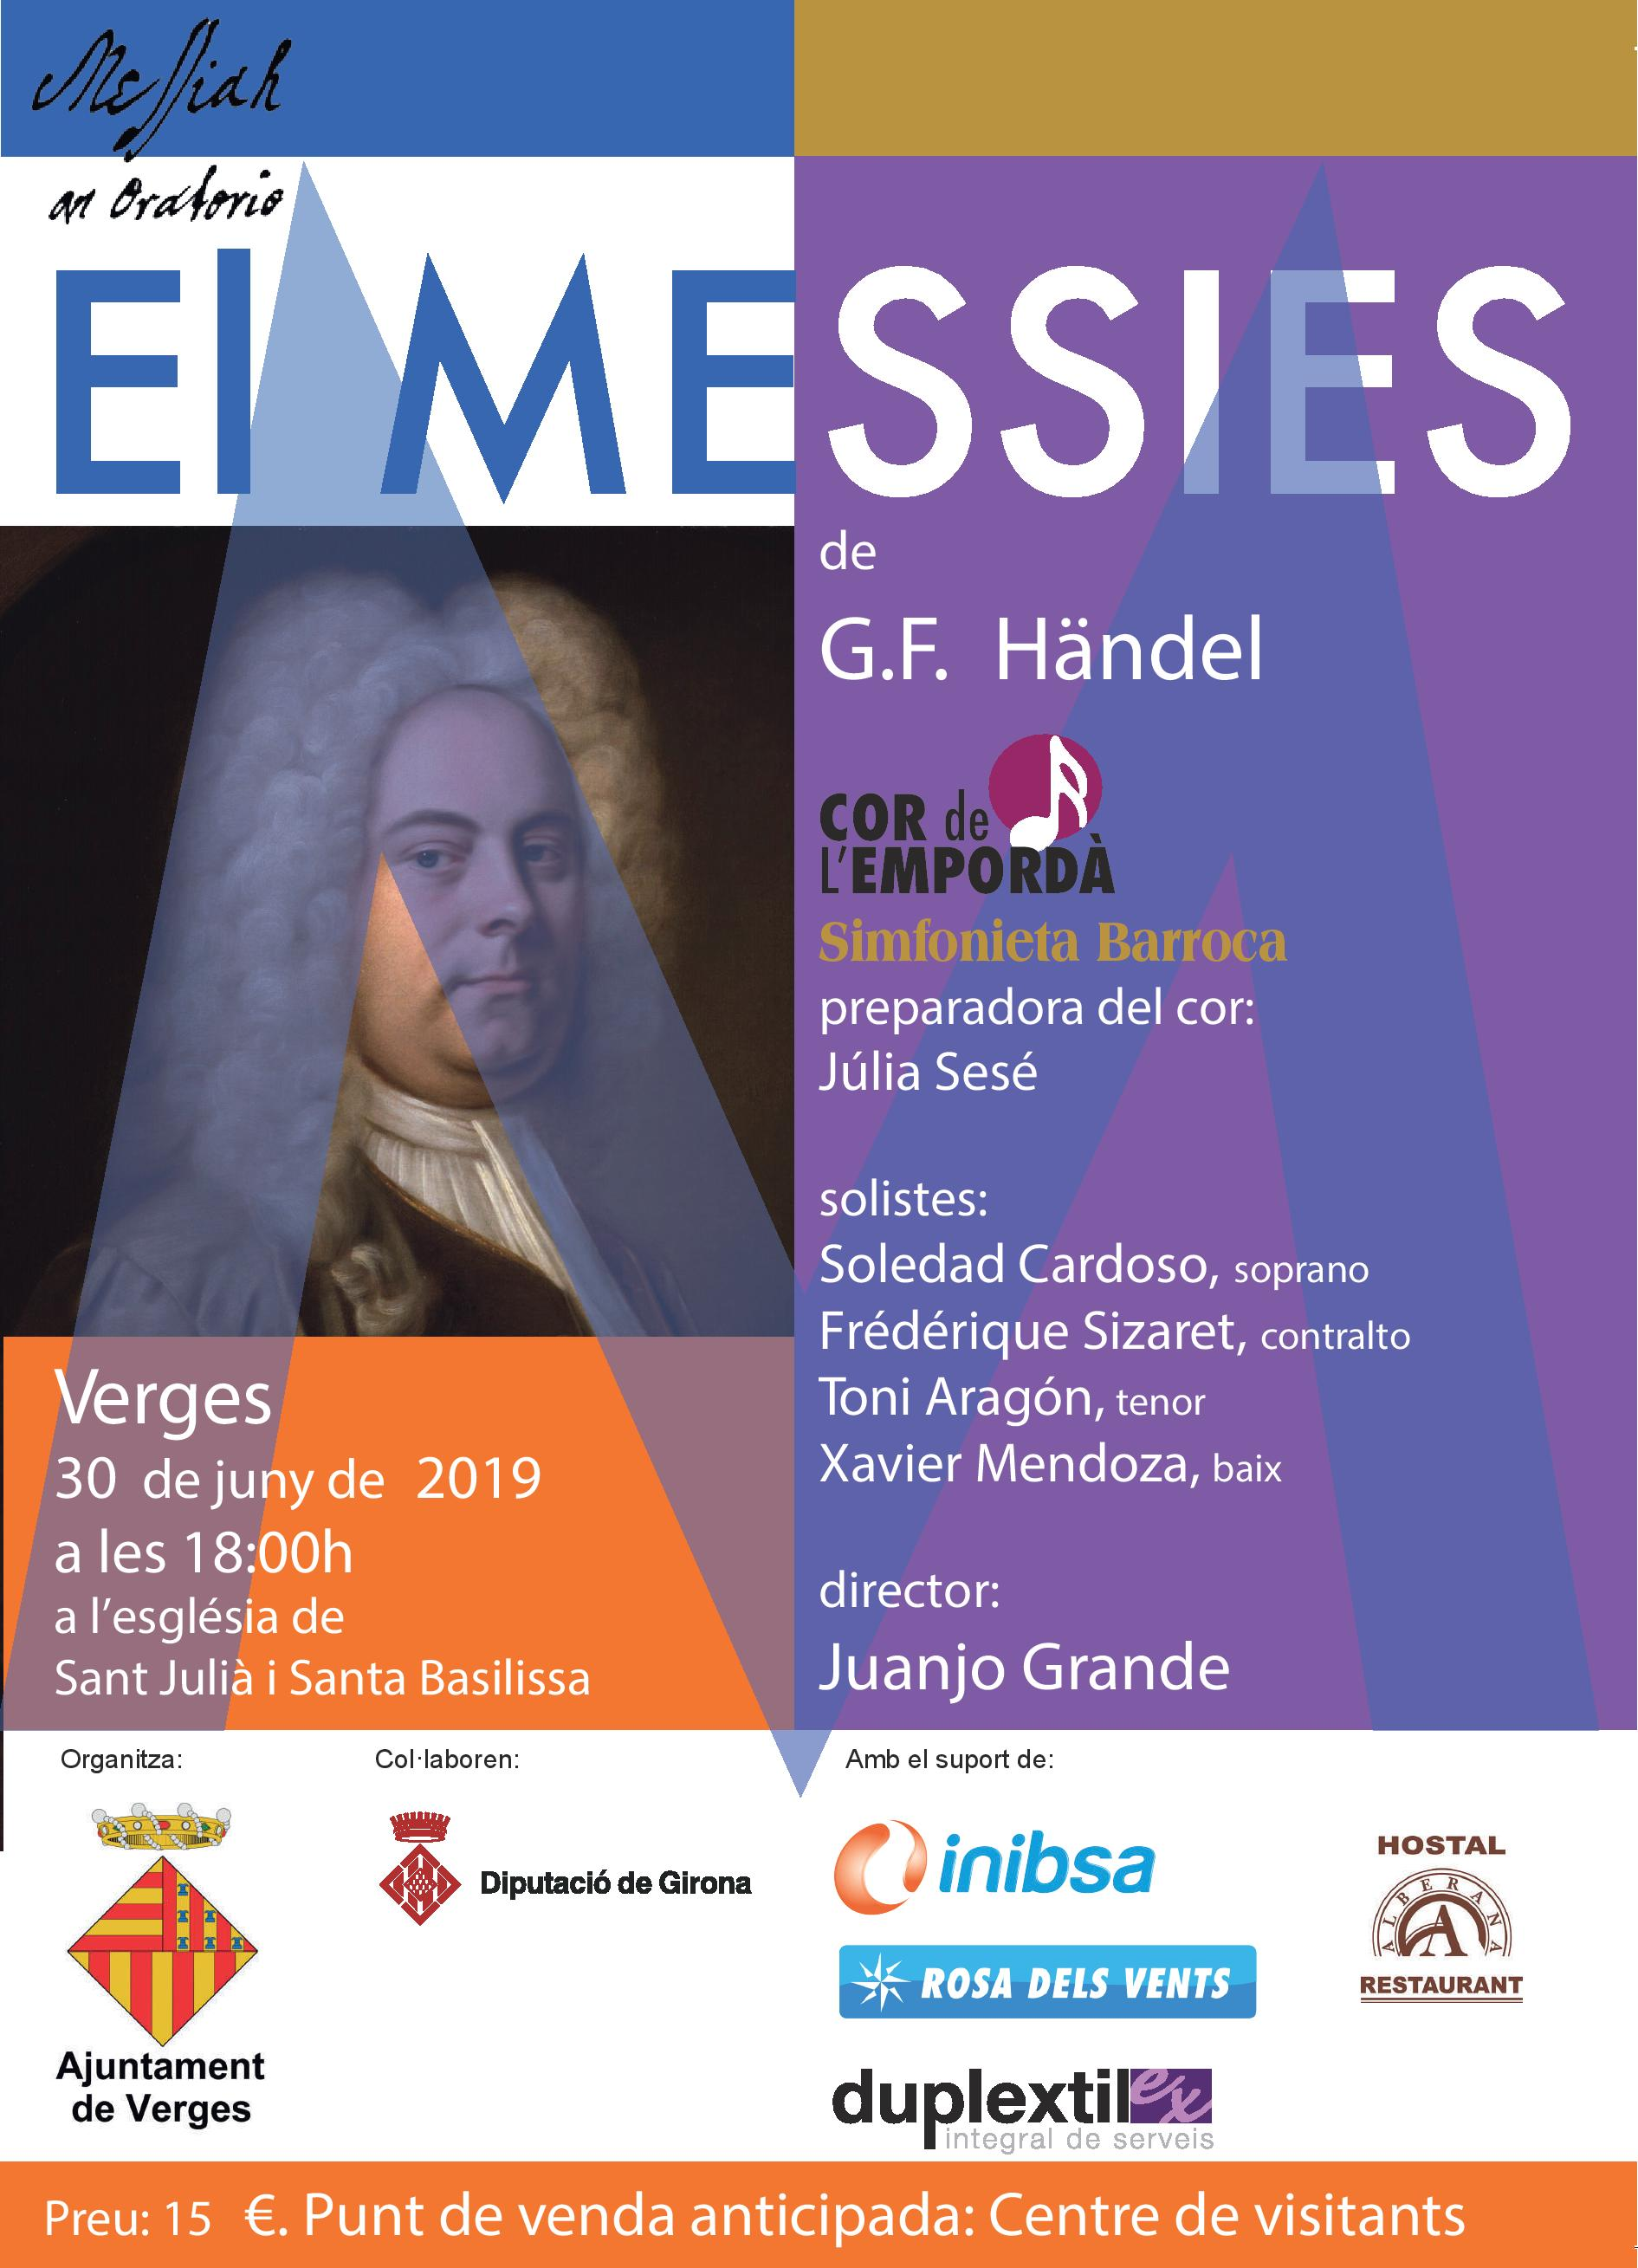 El Messies de Handel a Verges